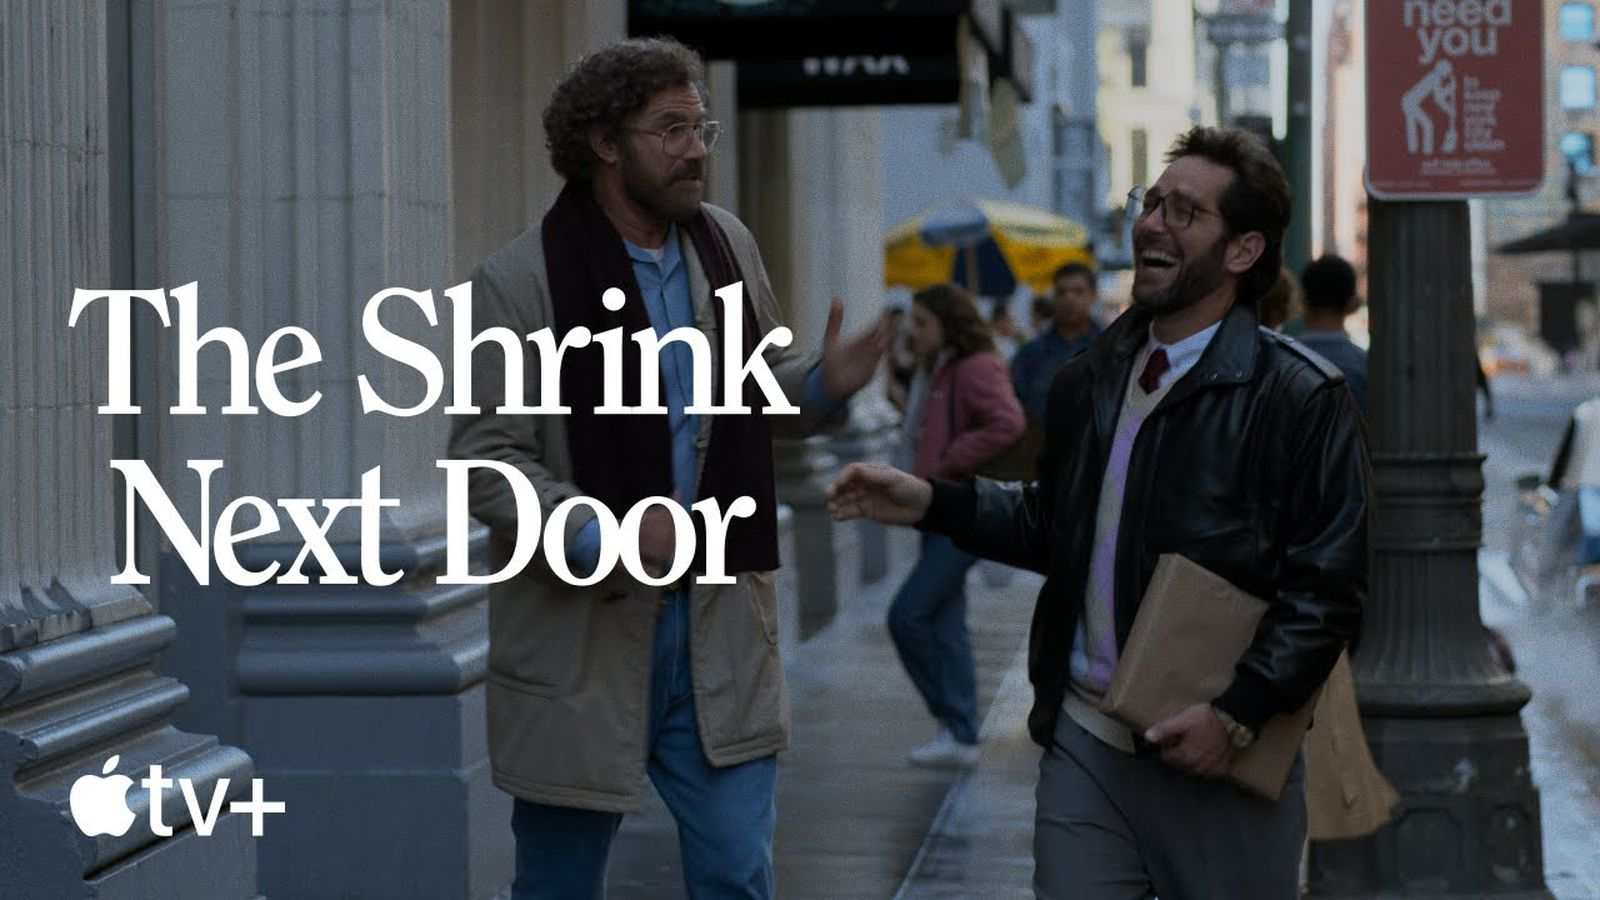 Apple TV+ Shares Trailer for 'The Shrink Next Door' Comedy Series Starring Will Ferrell and Paul Rudd